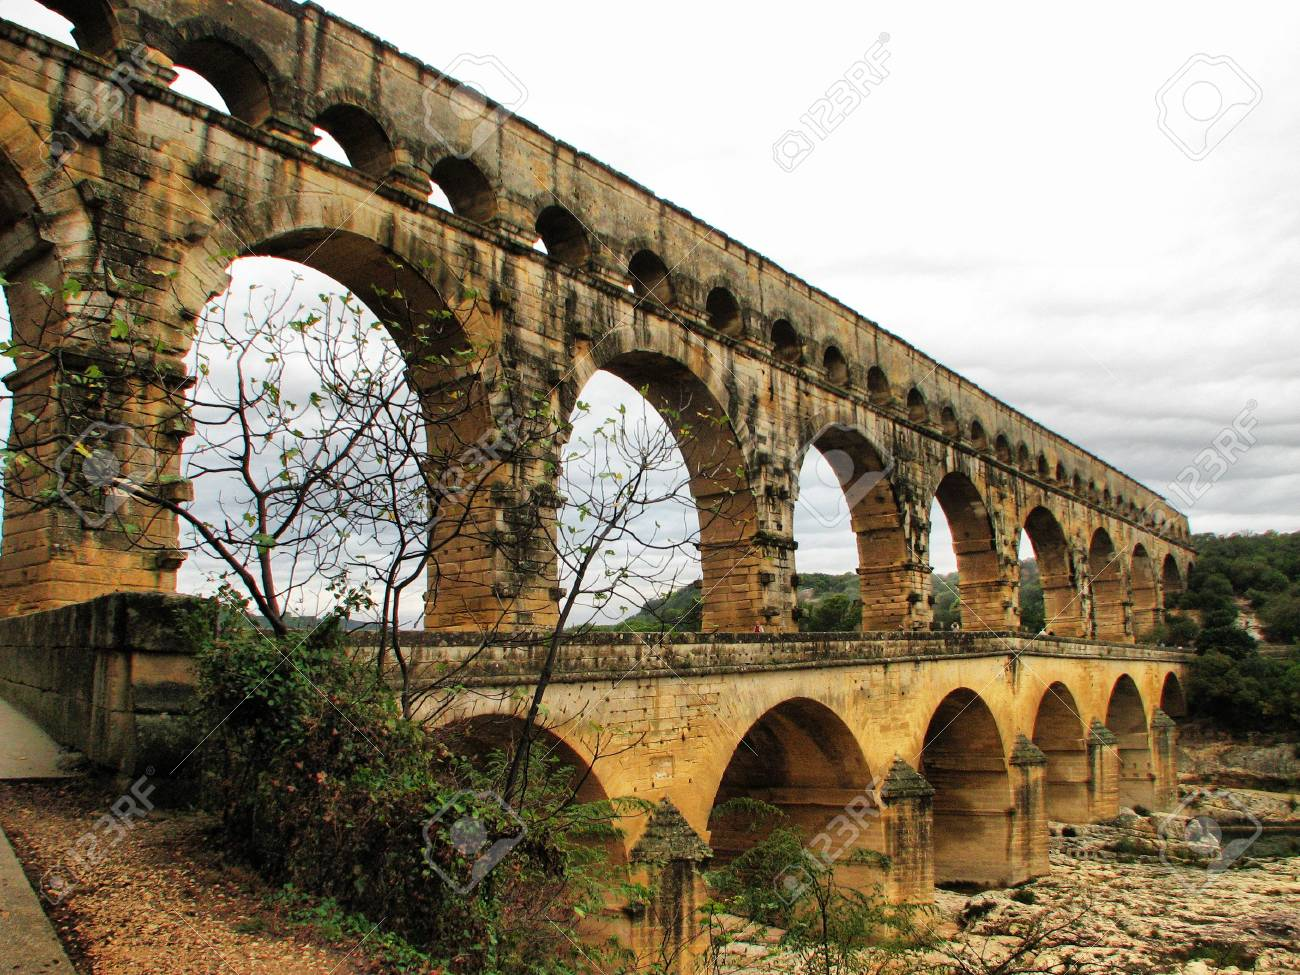 A view of an aqueduct Pont Du Gard in France Stock Photo - 3905937